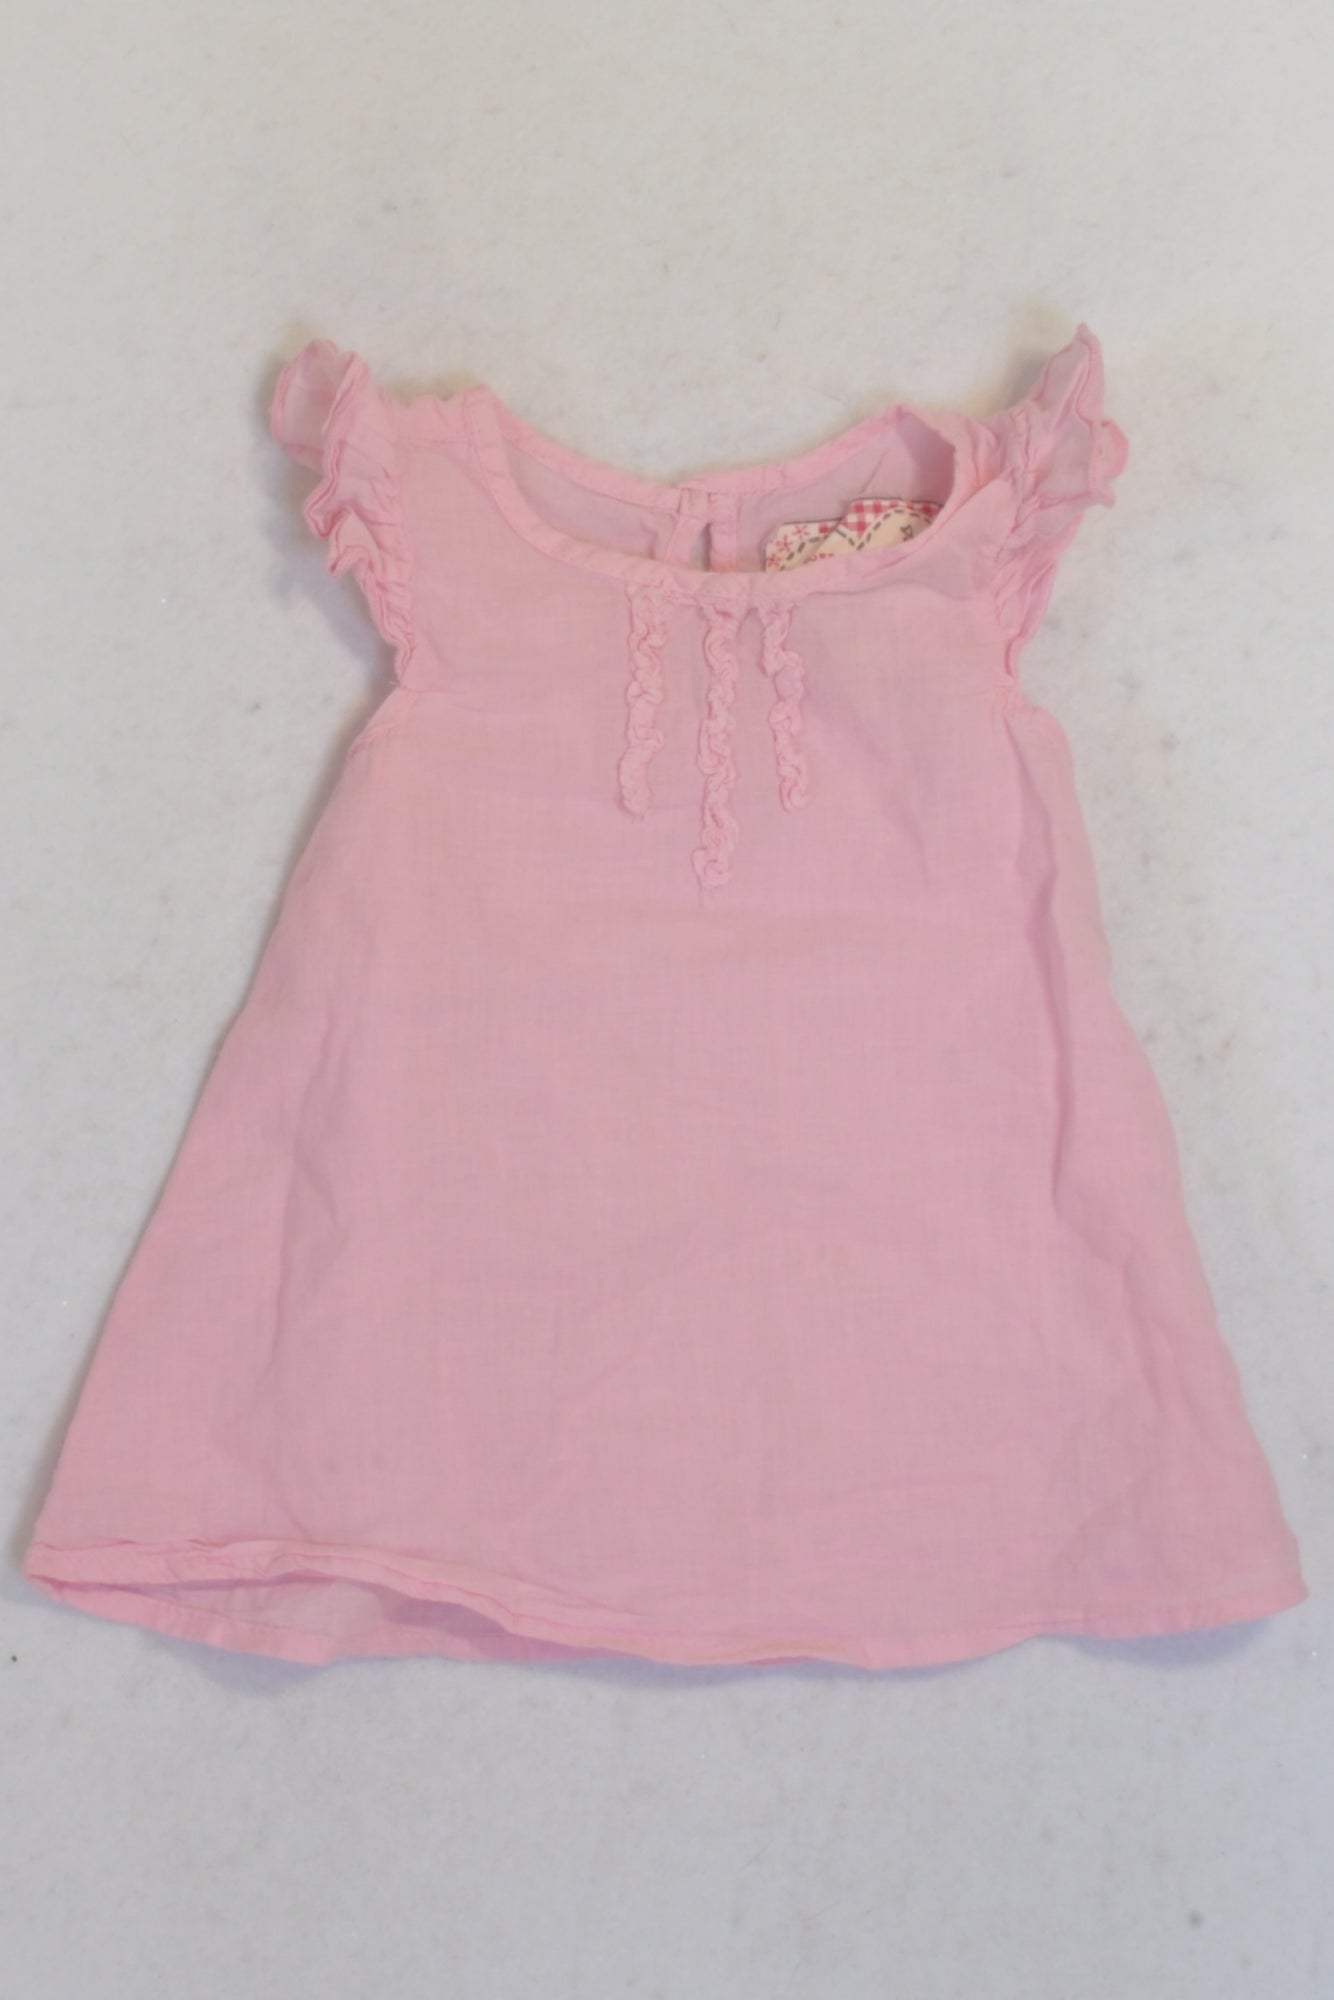 Fresh Produce Pink Cotton Tank Top Girls 3-6 months